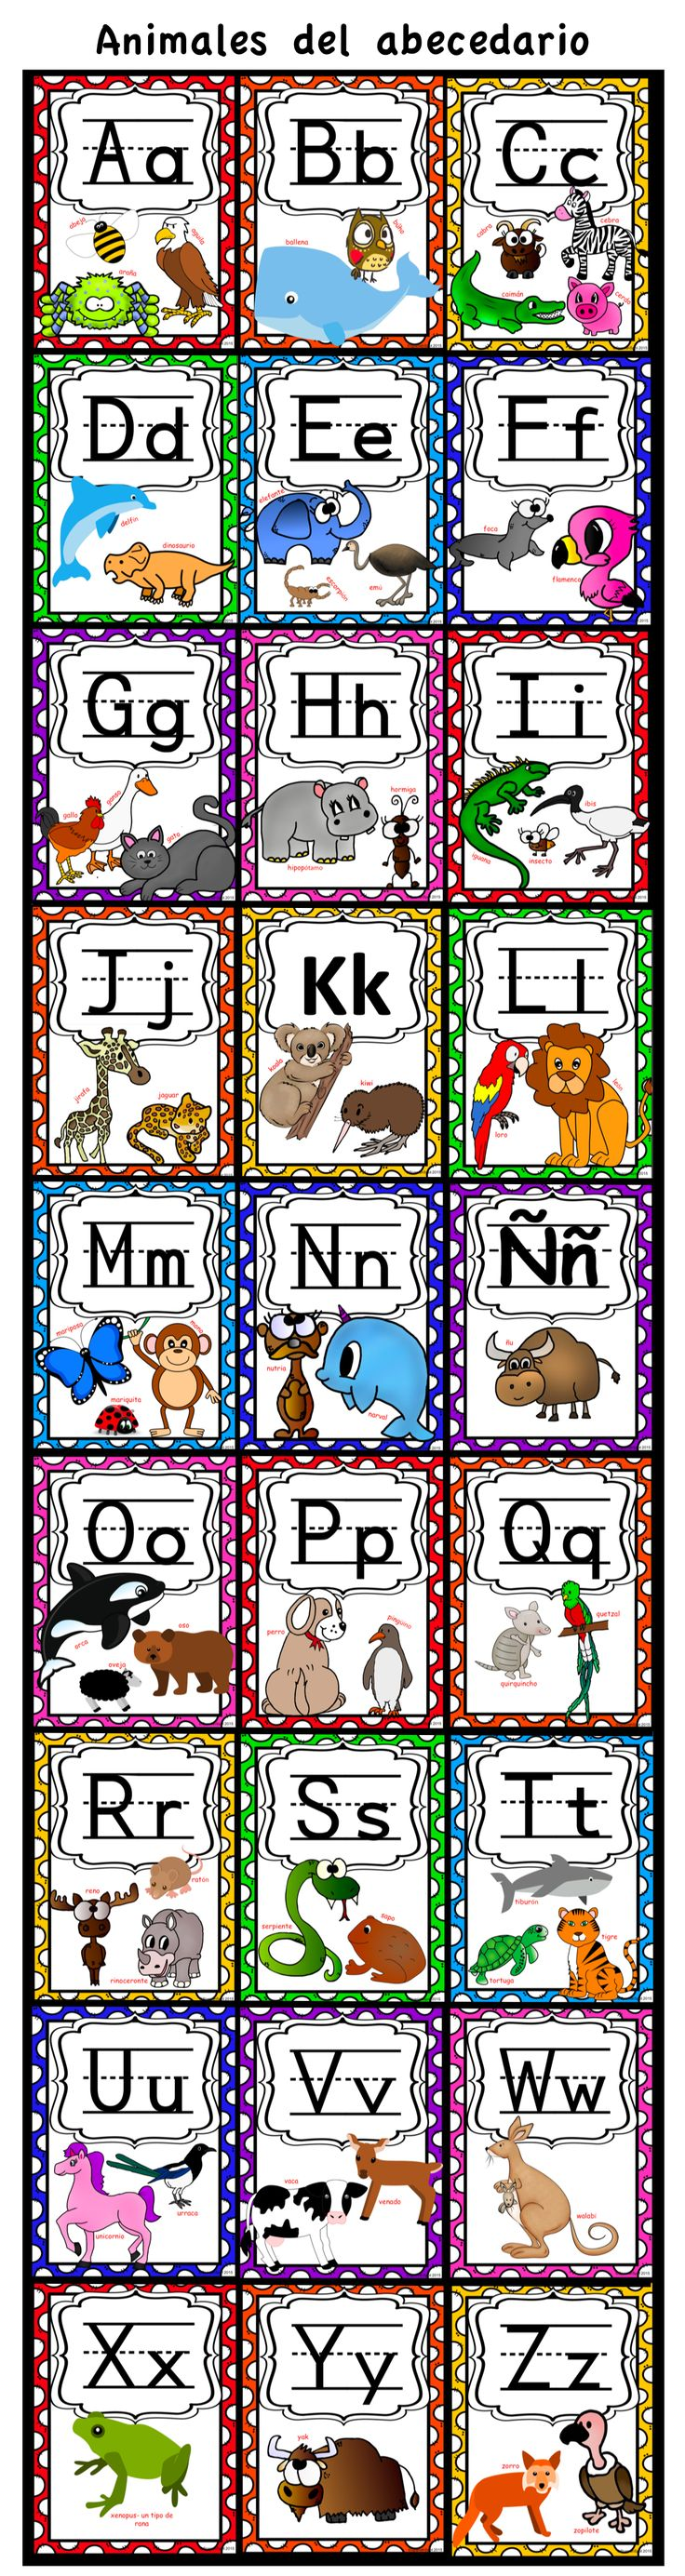 Spanish Alphabet Animals Posters on 8.5x11 #spanishalphabet